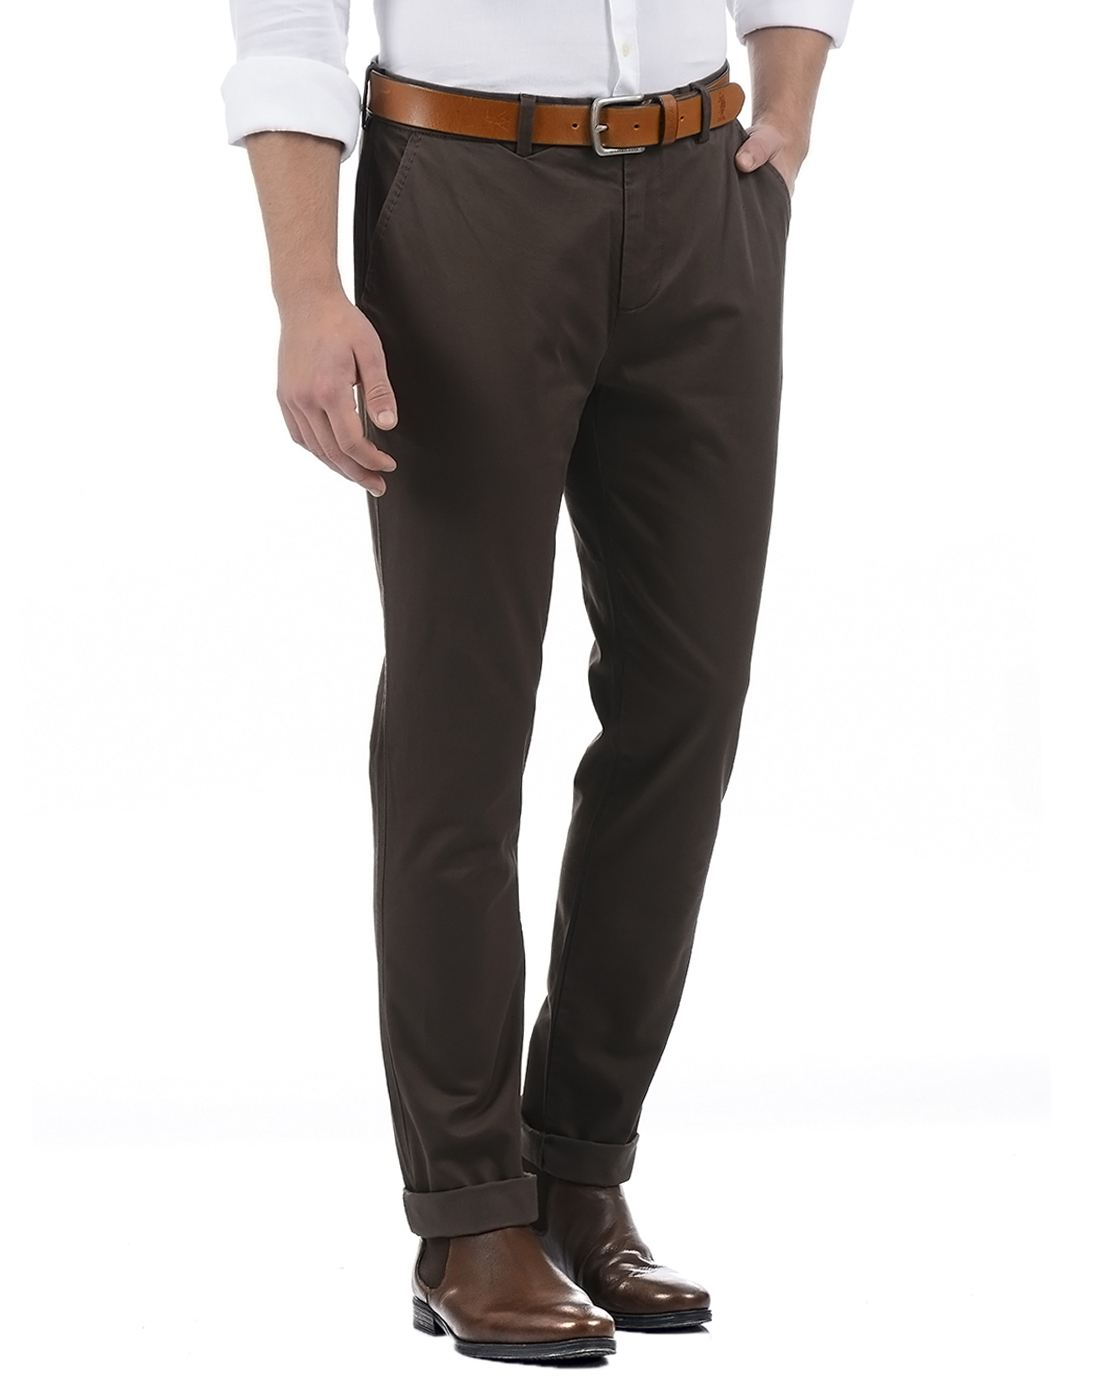 United Colors of Benetton Men's Brown Casual Trousers